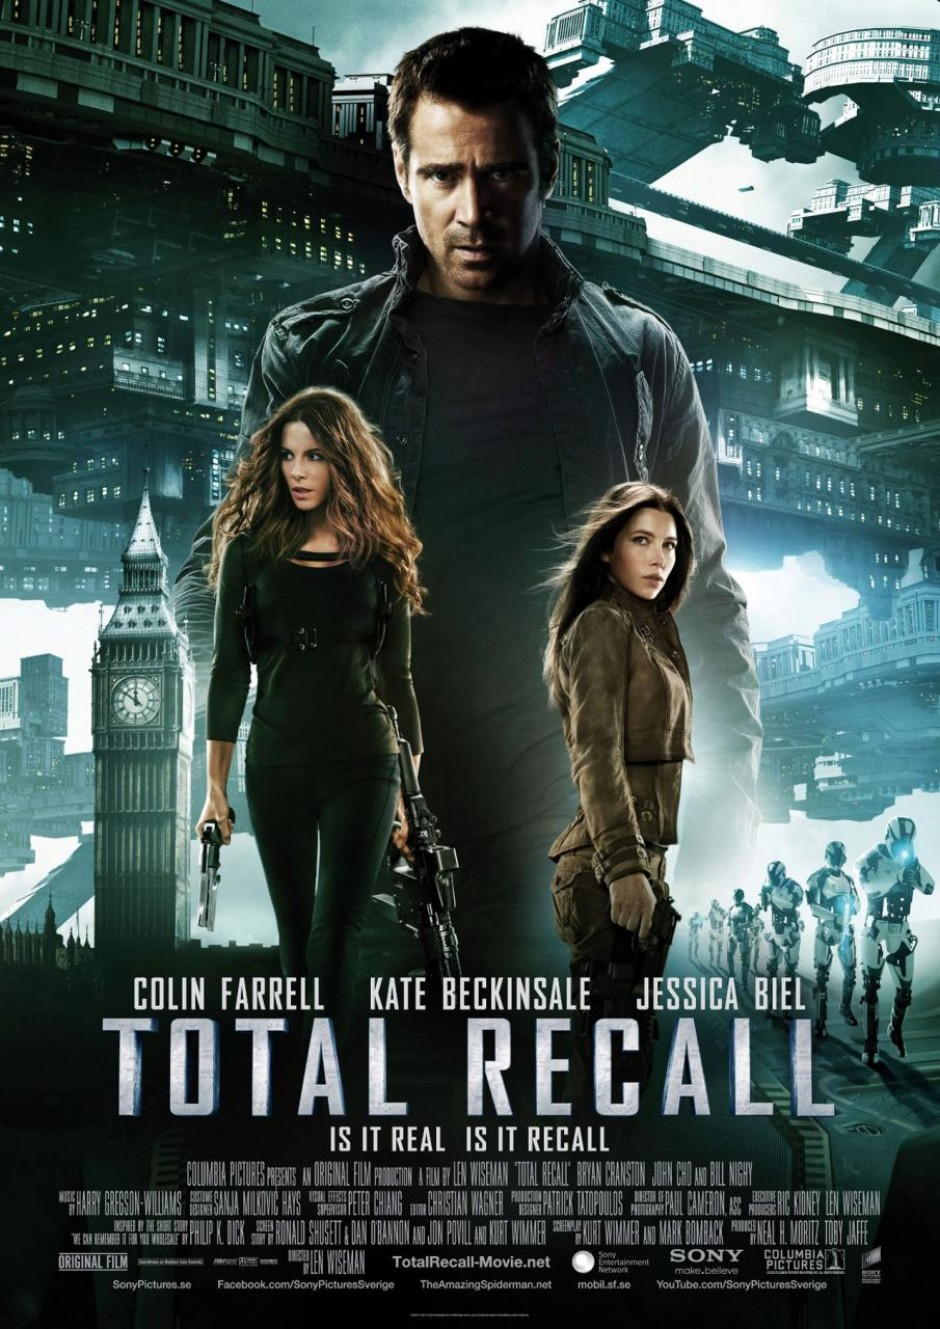 Total-Recall-2012-Movie-Poster1-e1342103315897.jpg